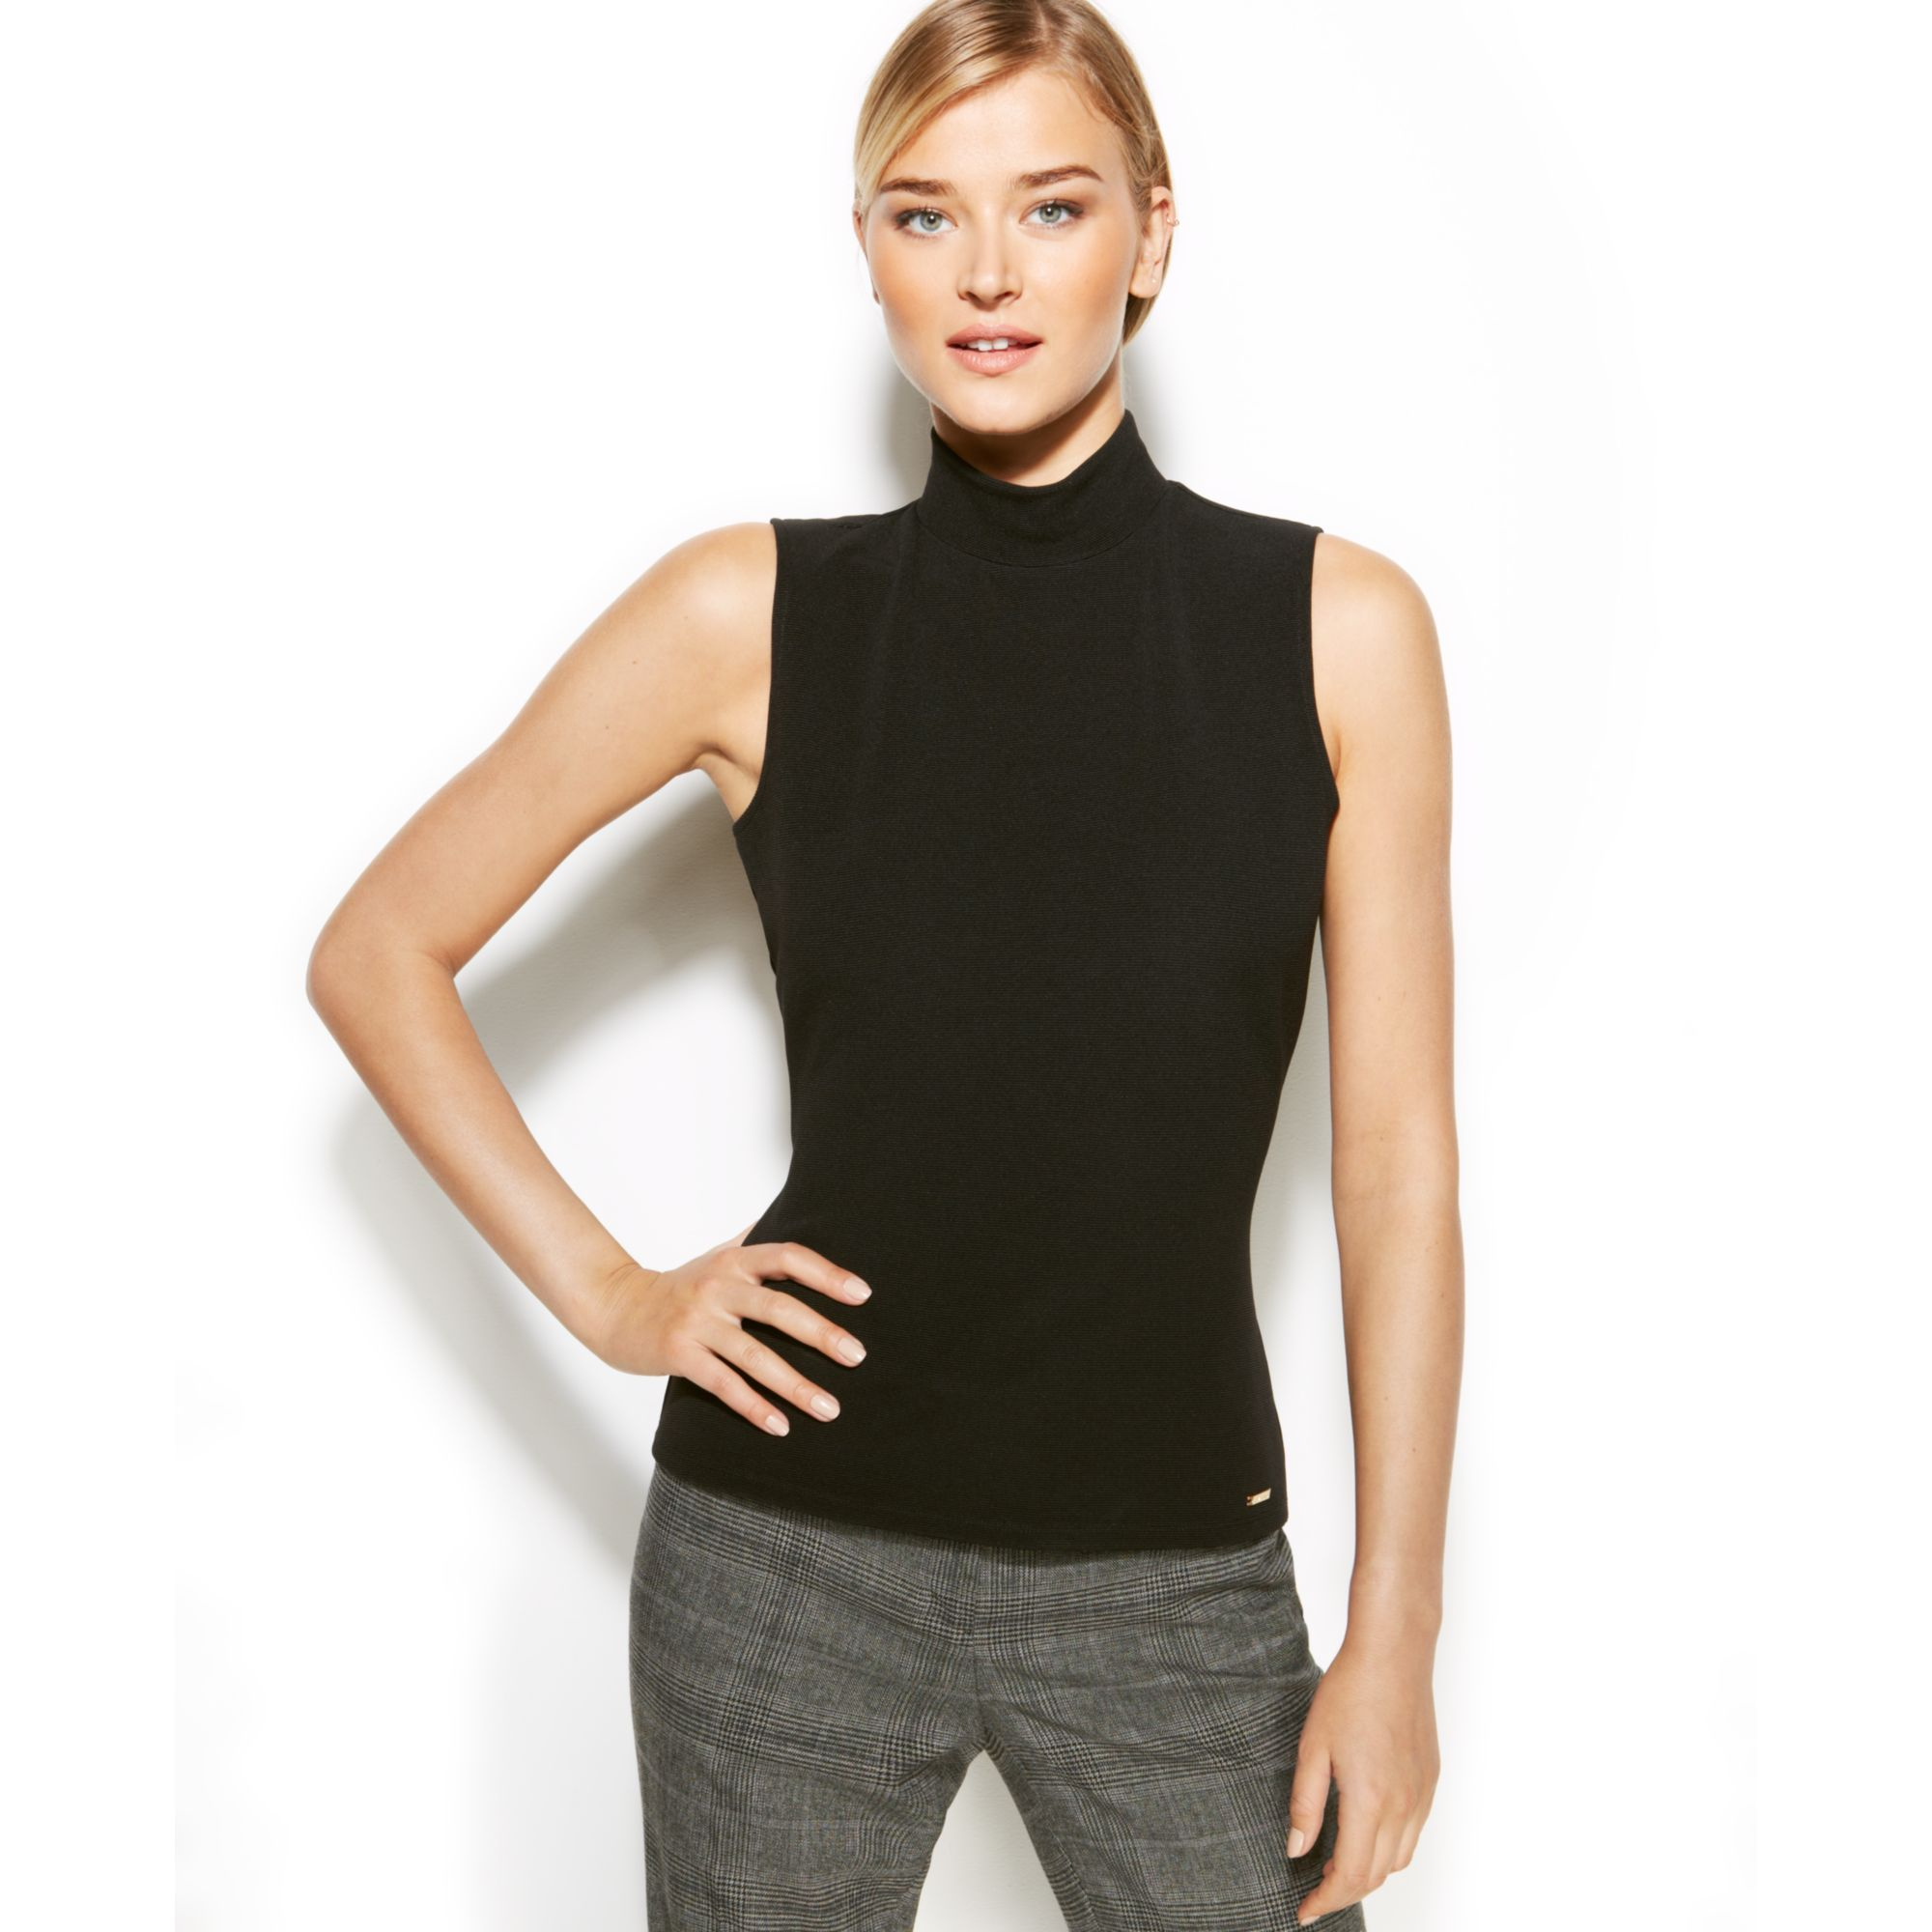 57f4a09bd3ad4 Lyst - Calvin Klein Sleeveless Ribbed Mock Turtleneck in Black